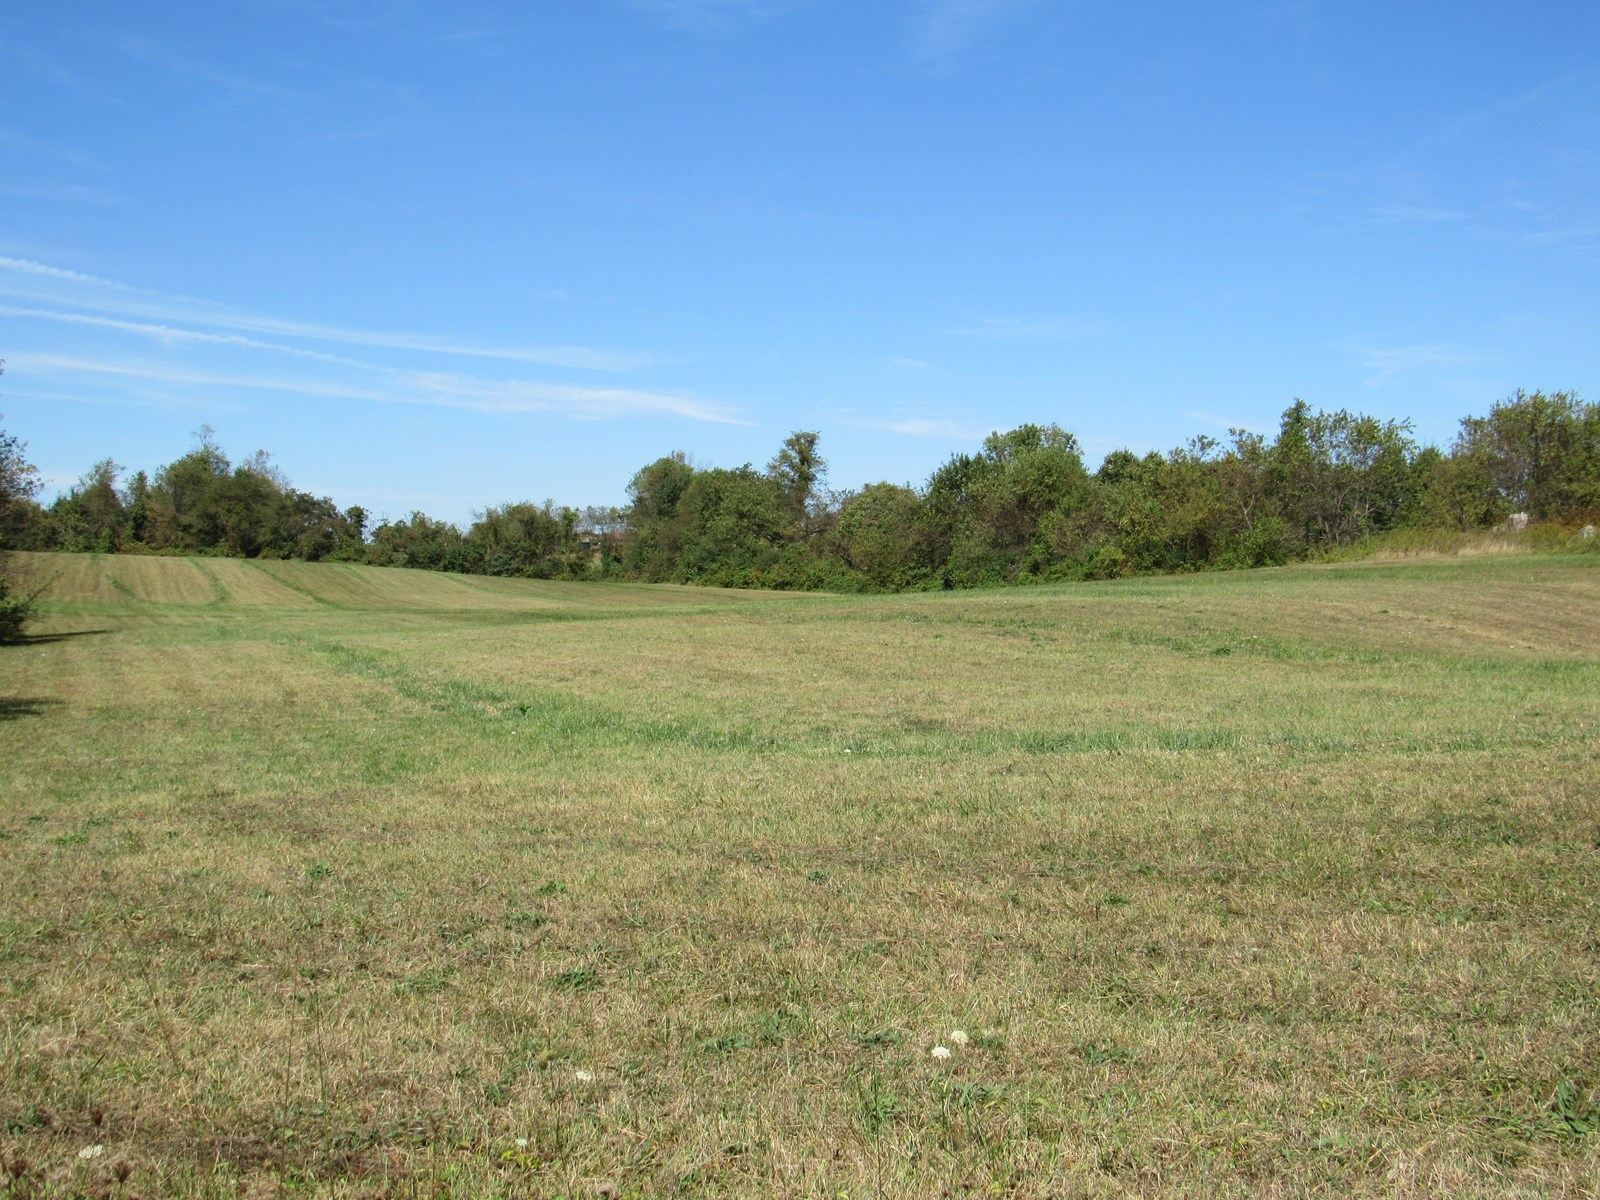 Commercial Property In Glade Spring VA For Sale